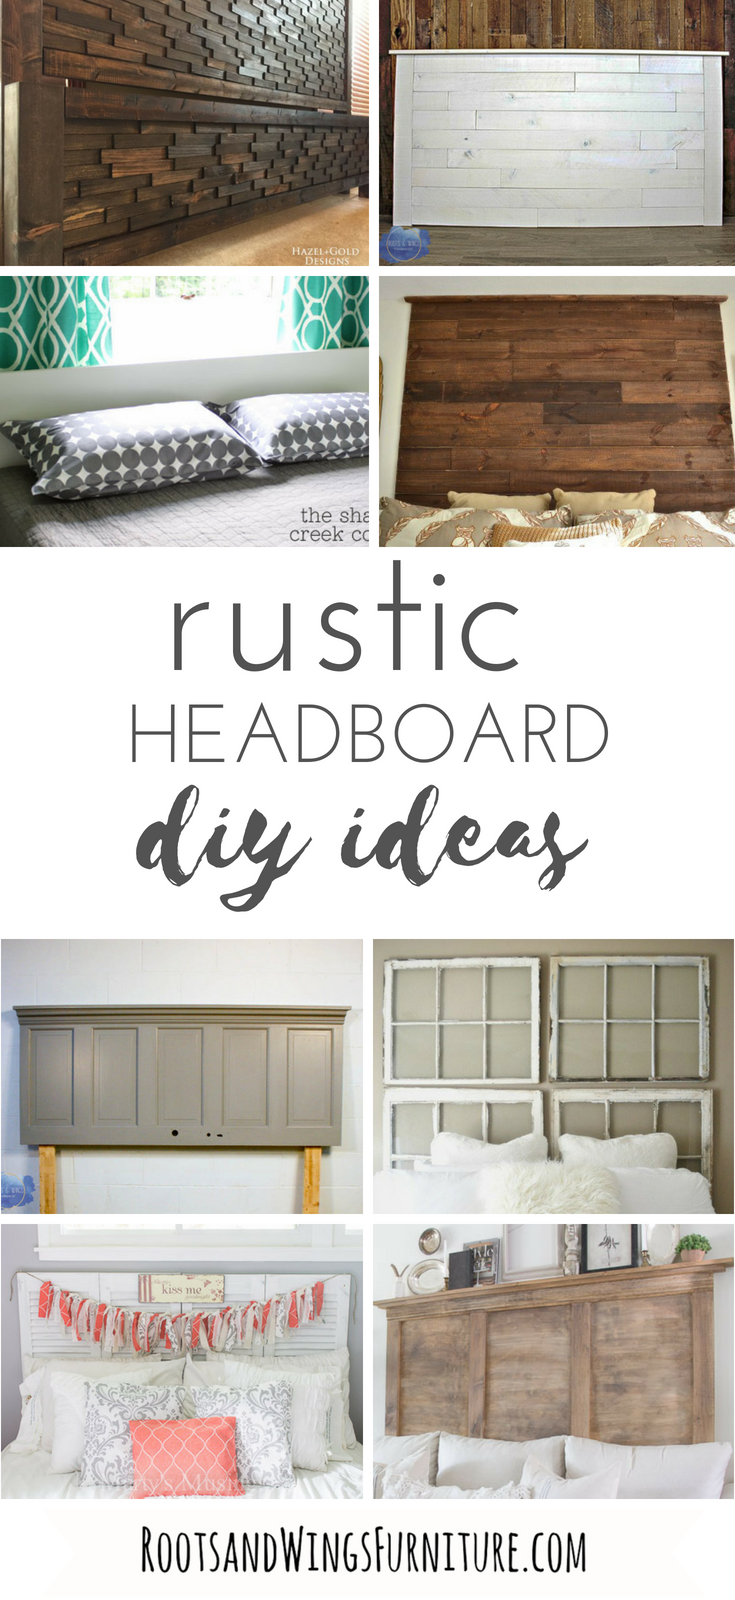 How To Make A Headboard 8 Diy Ideas Diy Wood Headboard Rustic